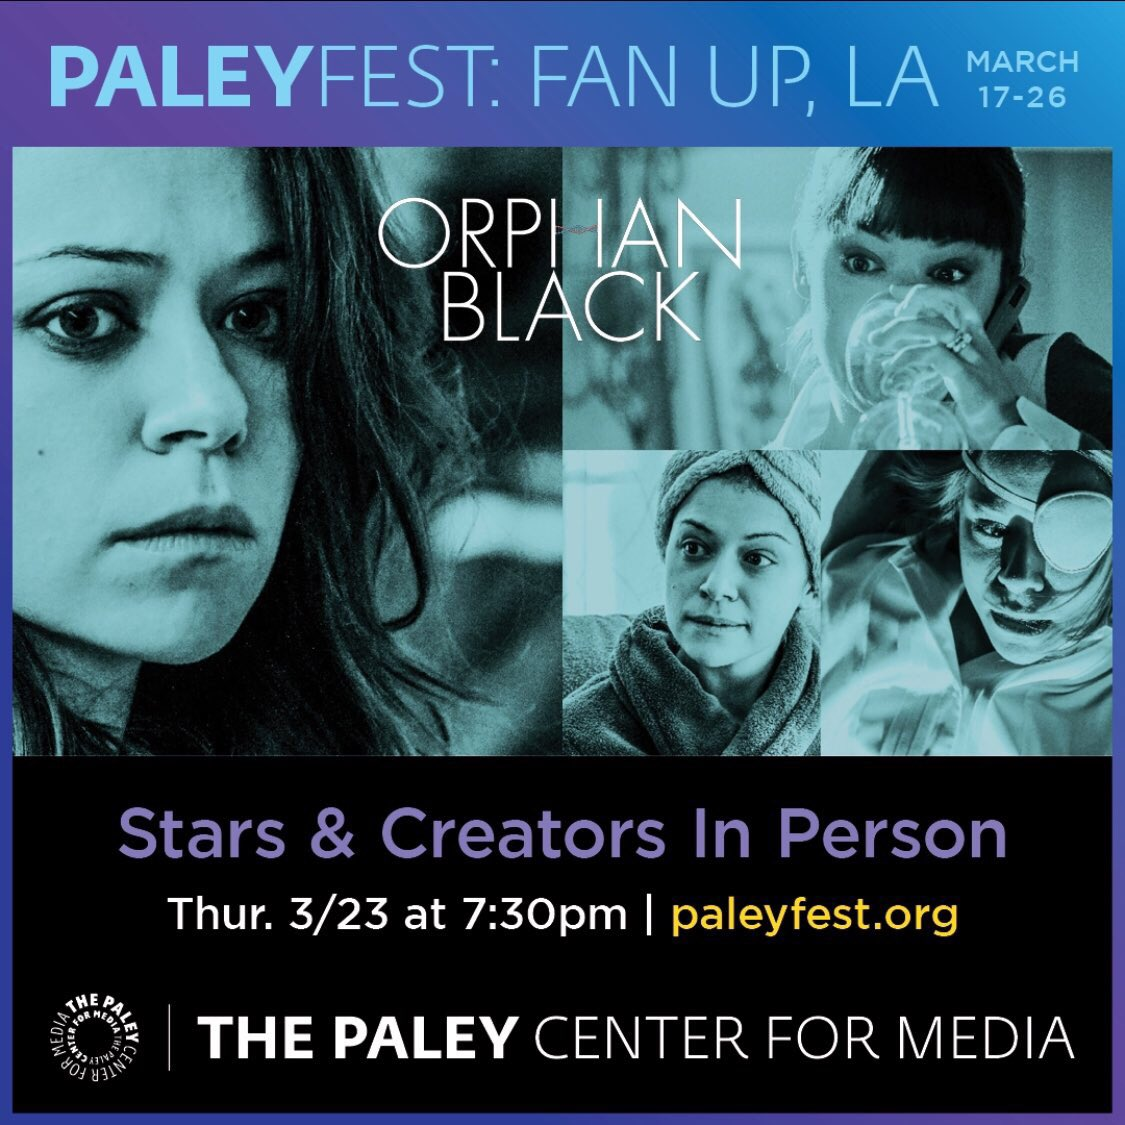 Good evening from #PaleyFest ! We're @DolbyTheatre awaiting the arrival of the @OrphanBlack cast & creatives. #sestras 👯👯👯👯 https://t.co/oEHP6kPd42